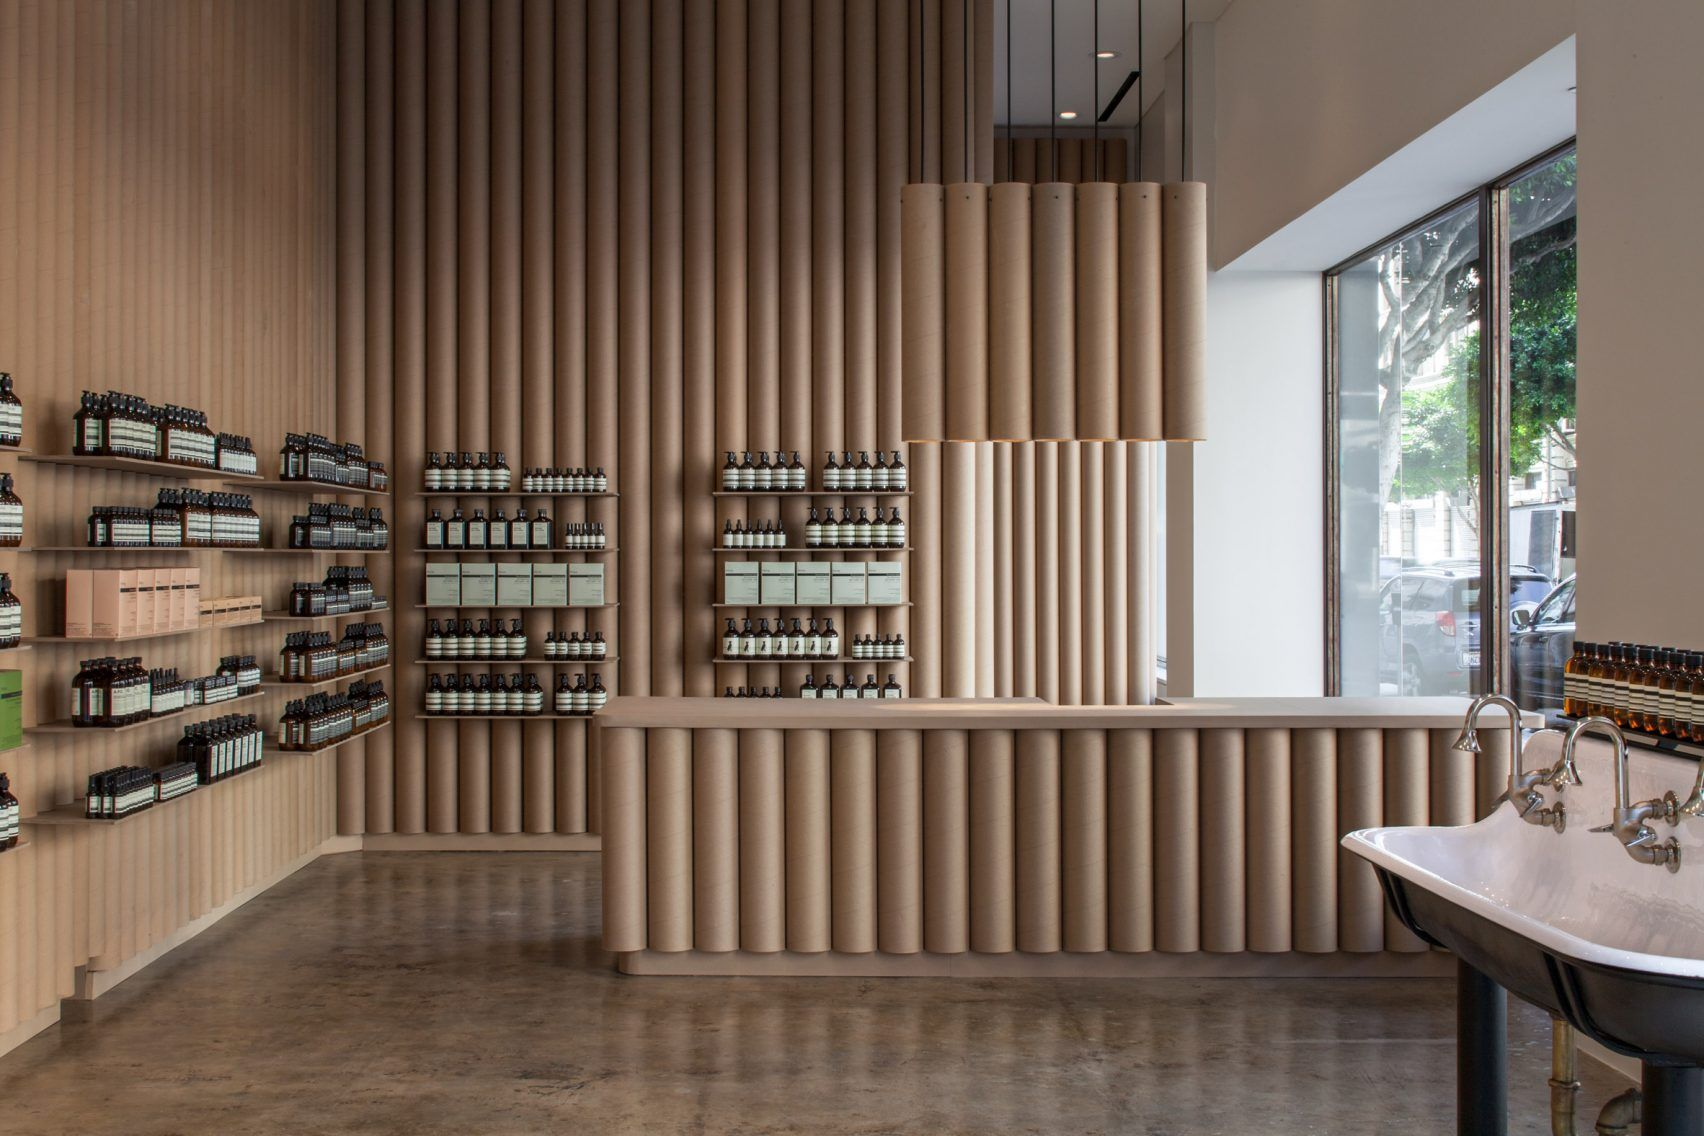 Brooks scarpa recycles cardboard tubes and paper for los angeles aesop store interior